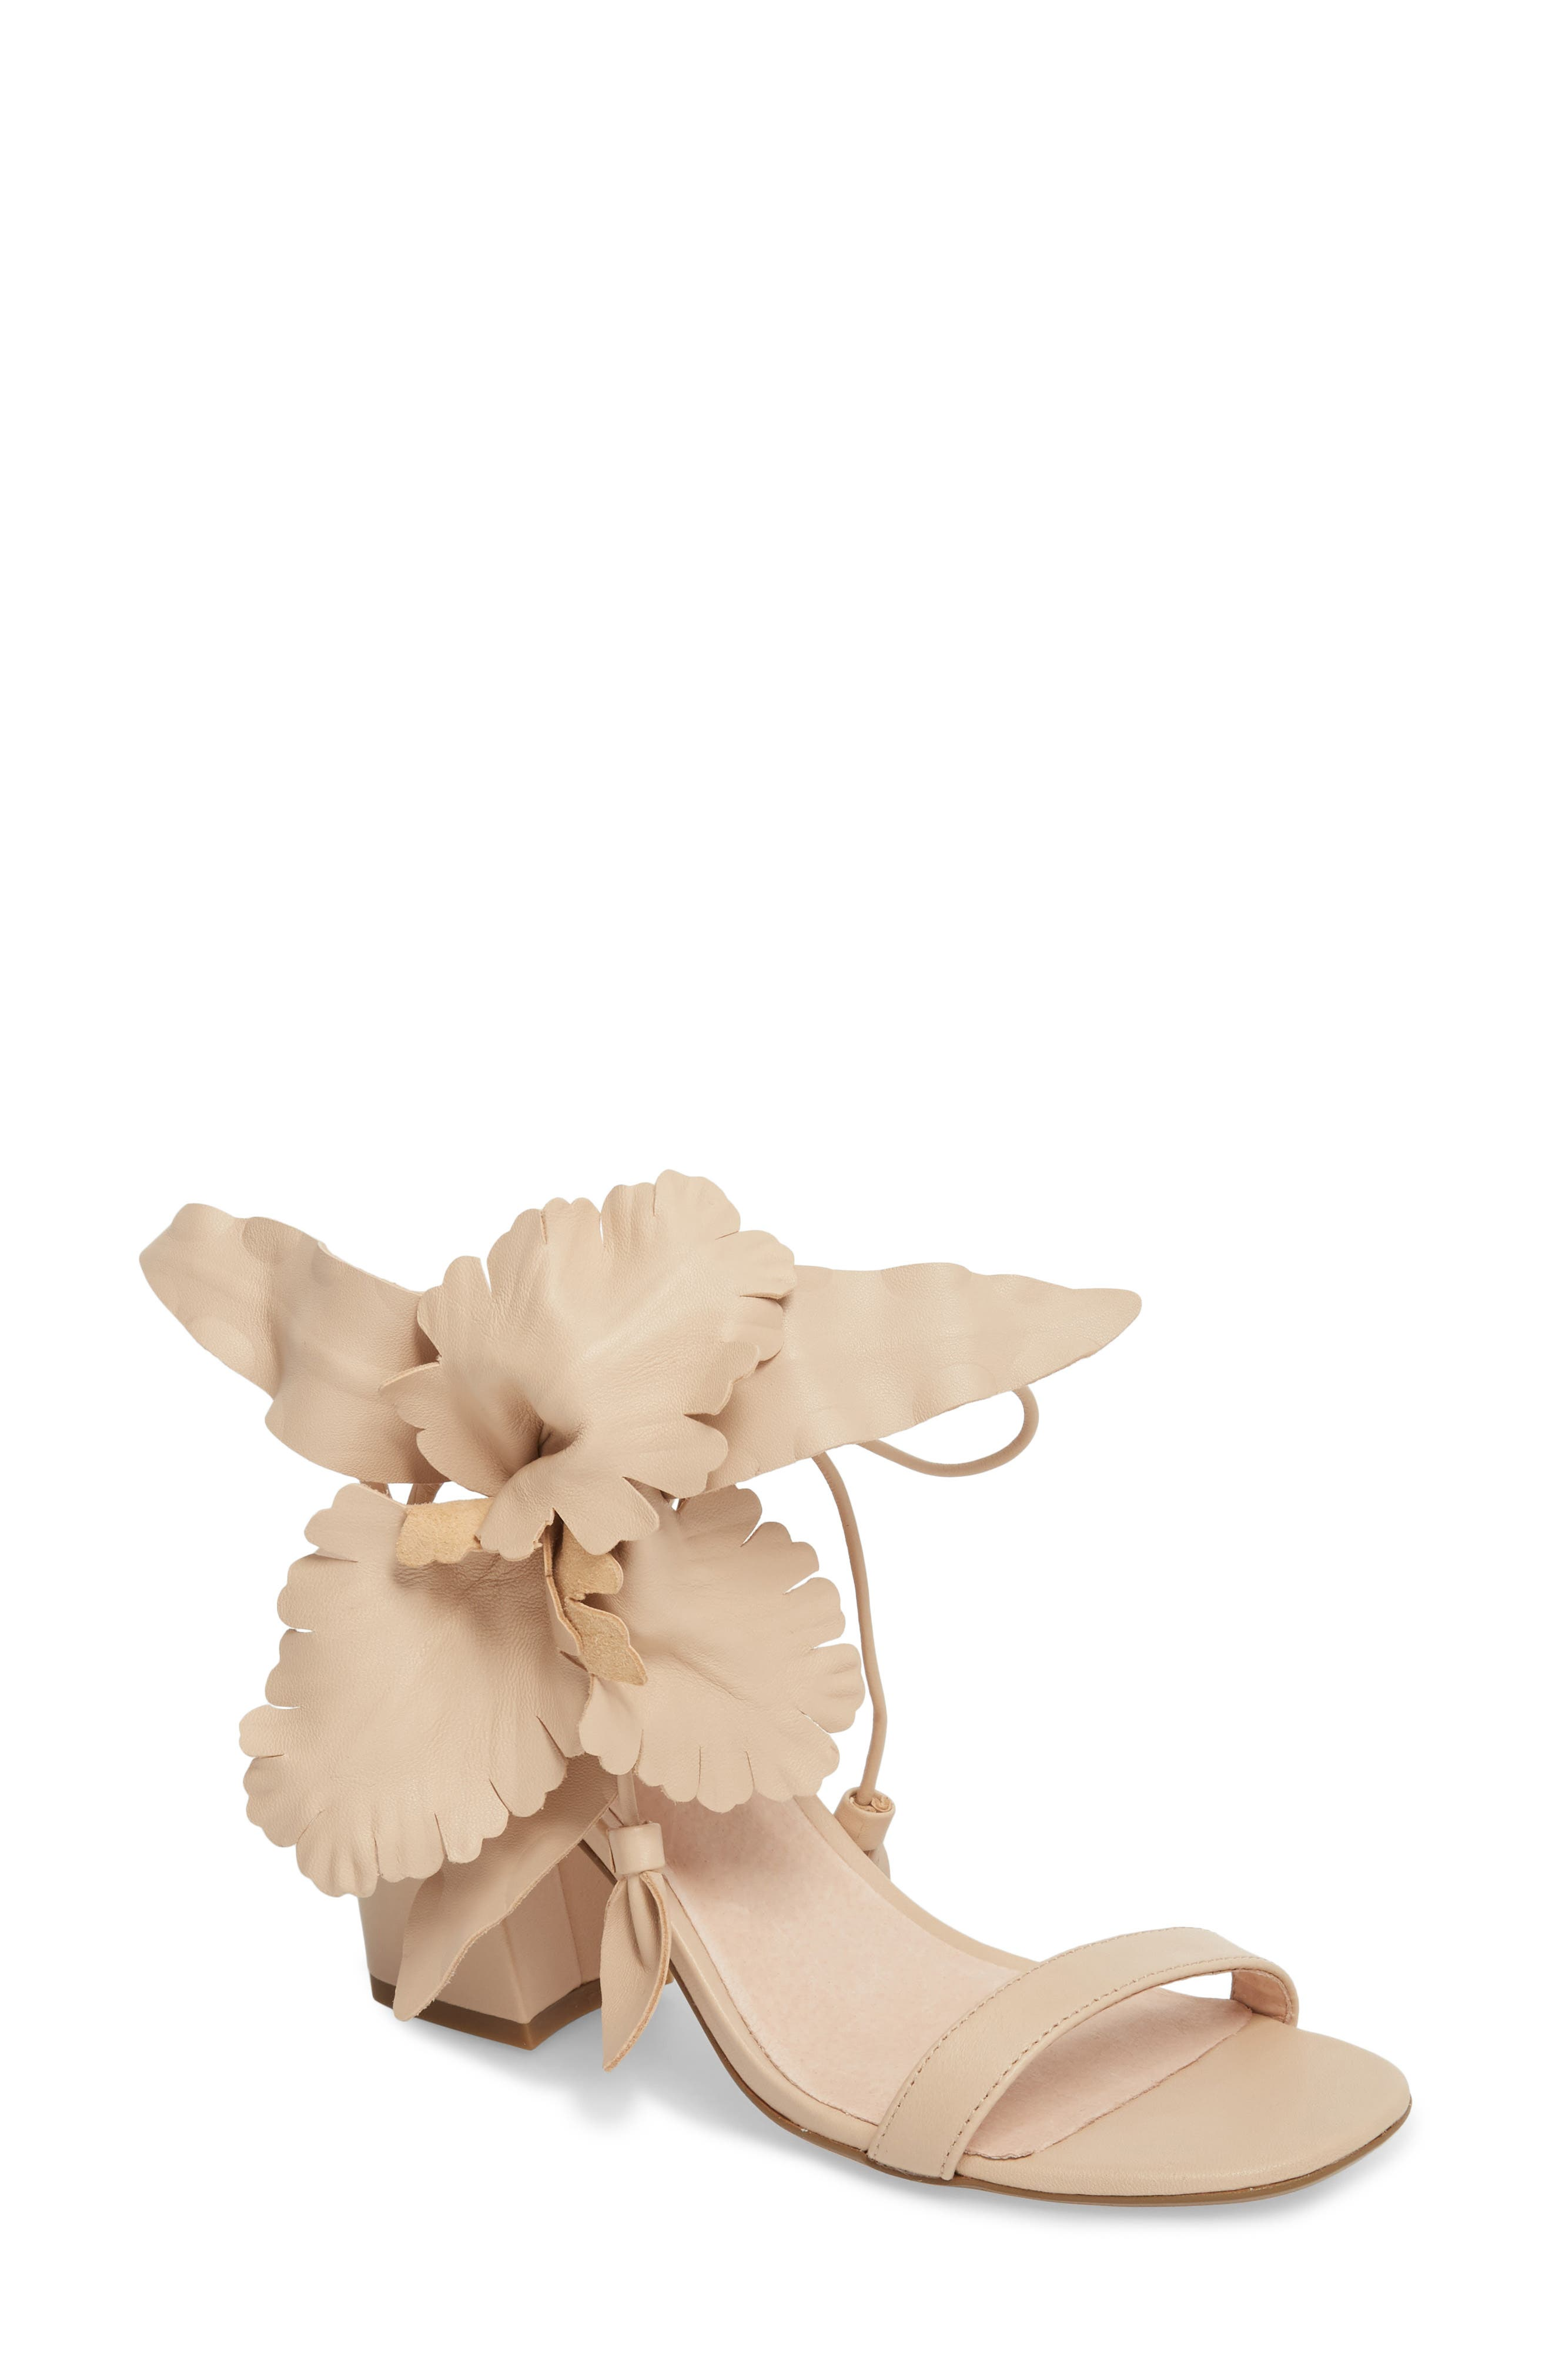 Hibiscus Sandal,                             Main thumbnail 1, color,                             NUDE LEATHER